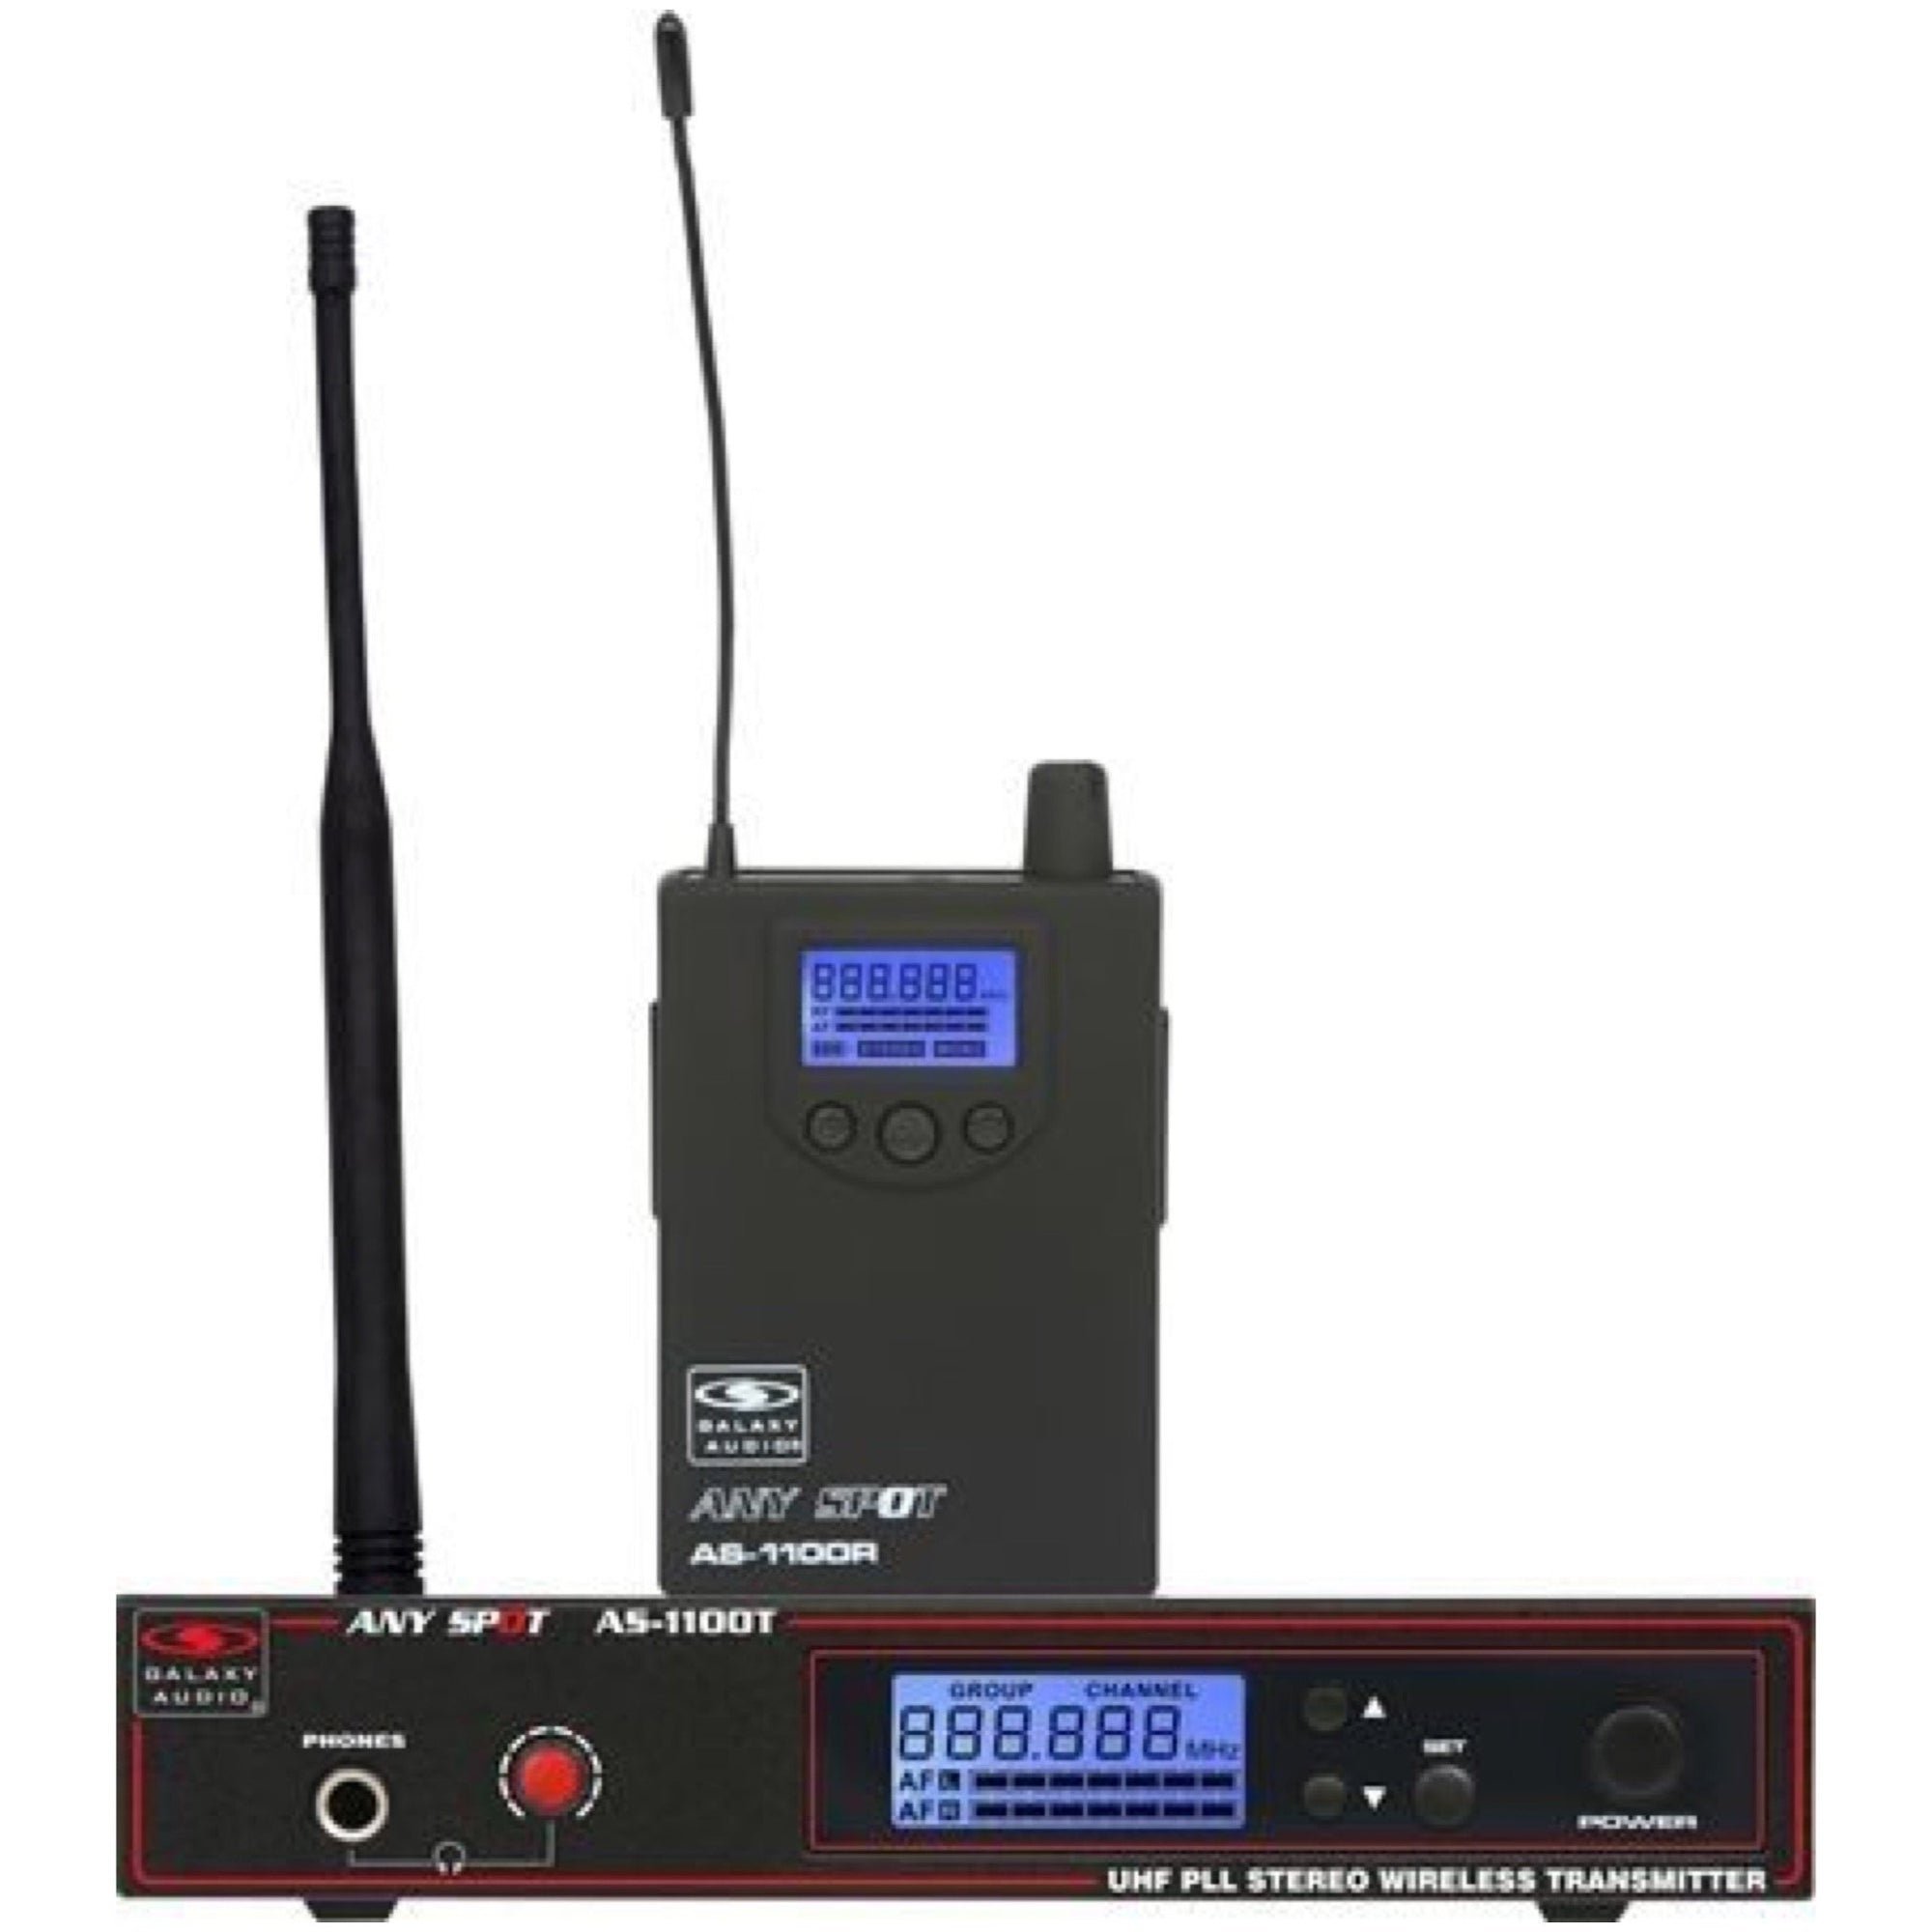 Galaxy Audio AS-1100 Selectable-Frequency Wireless In-Ear Monitor Personal System, Band D (584-607 MHz)